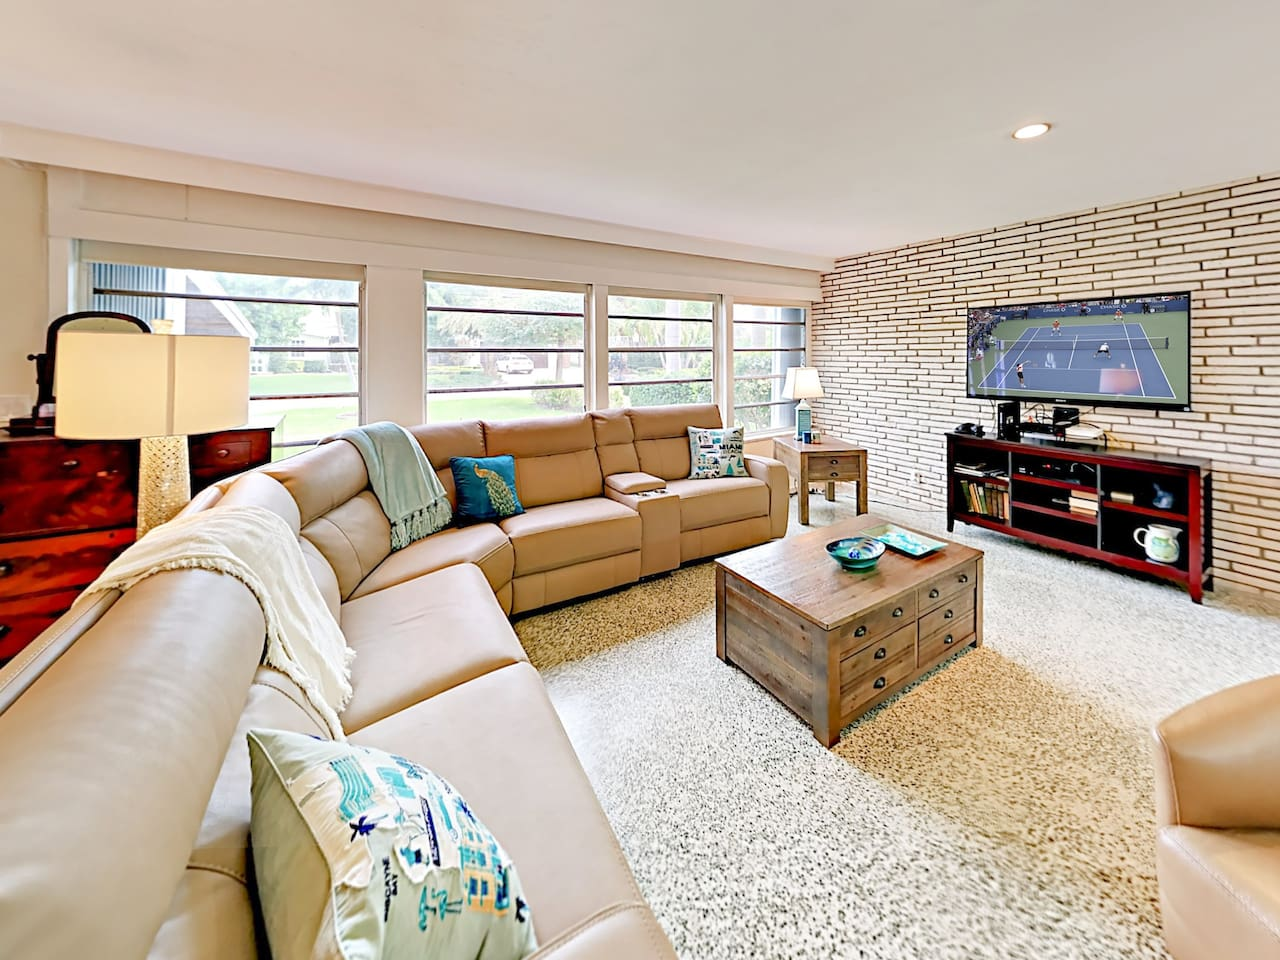 Welcome to Fort Lauderdale! Your rental is professionally managed by TurnKey Vacation Rentals.